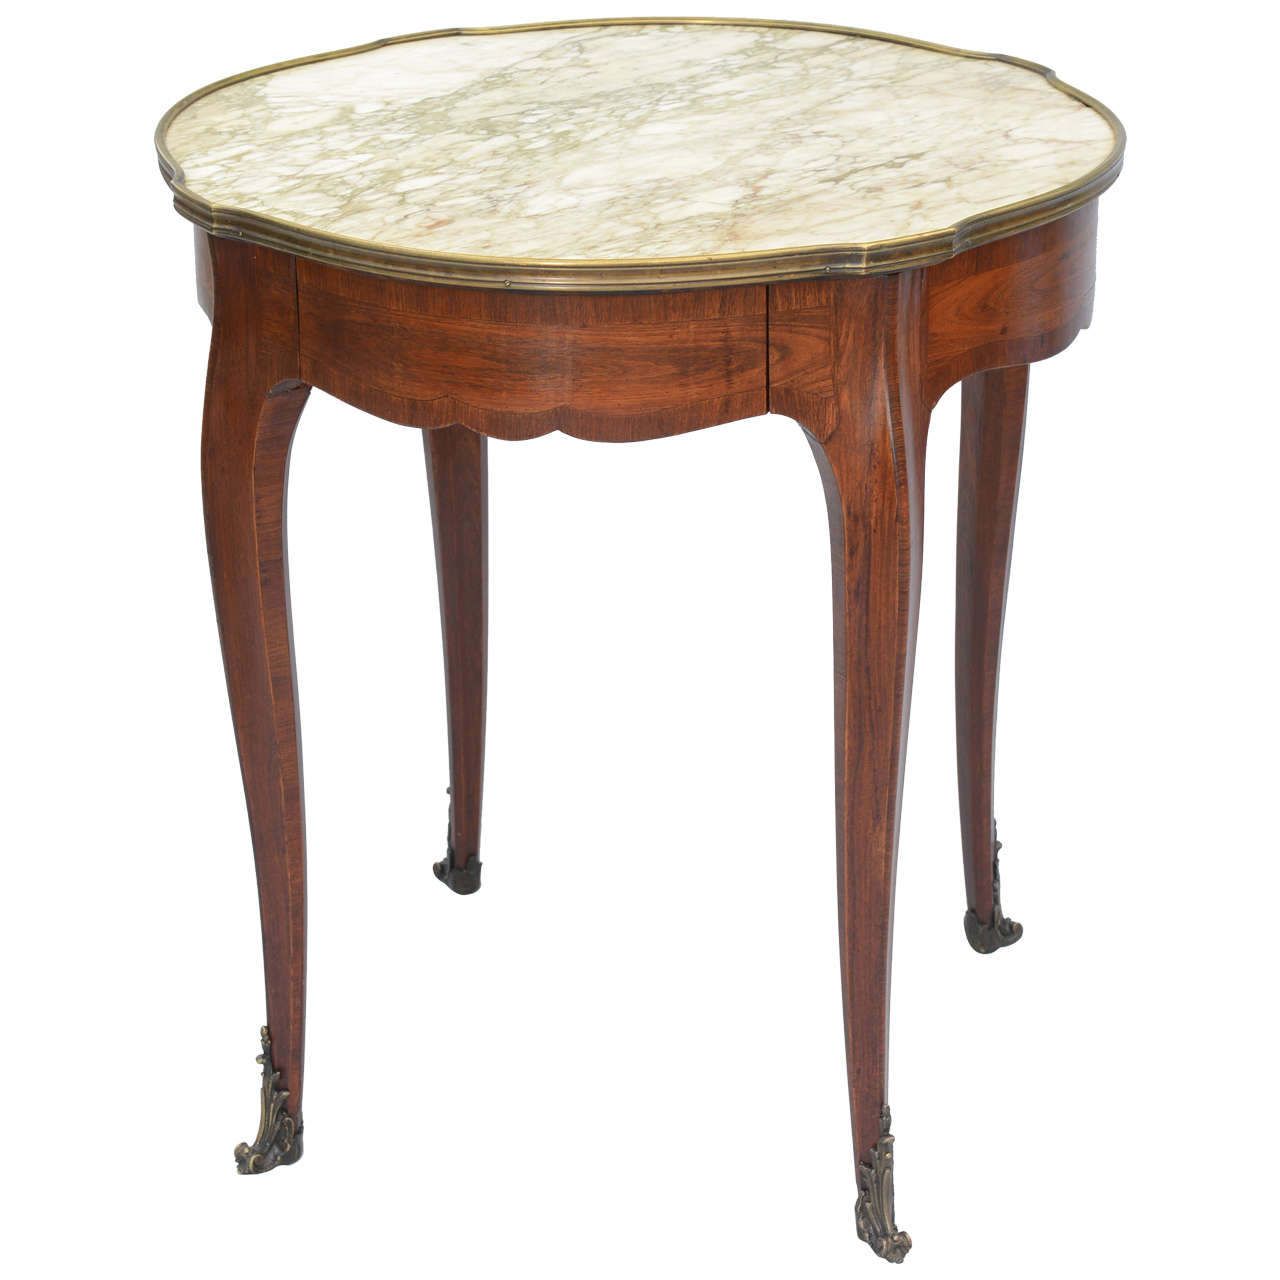 walnut accent table for sale at 1stdibs. Black Bedroom Furniture Sets. Home Design Ideas